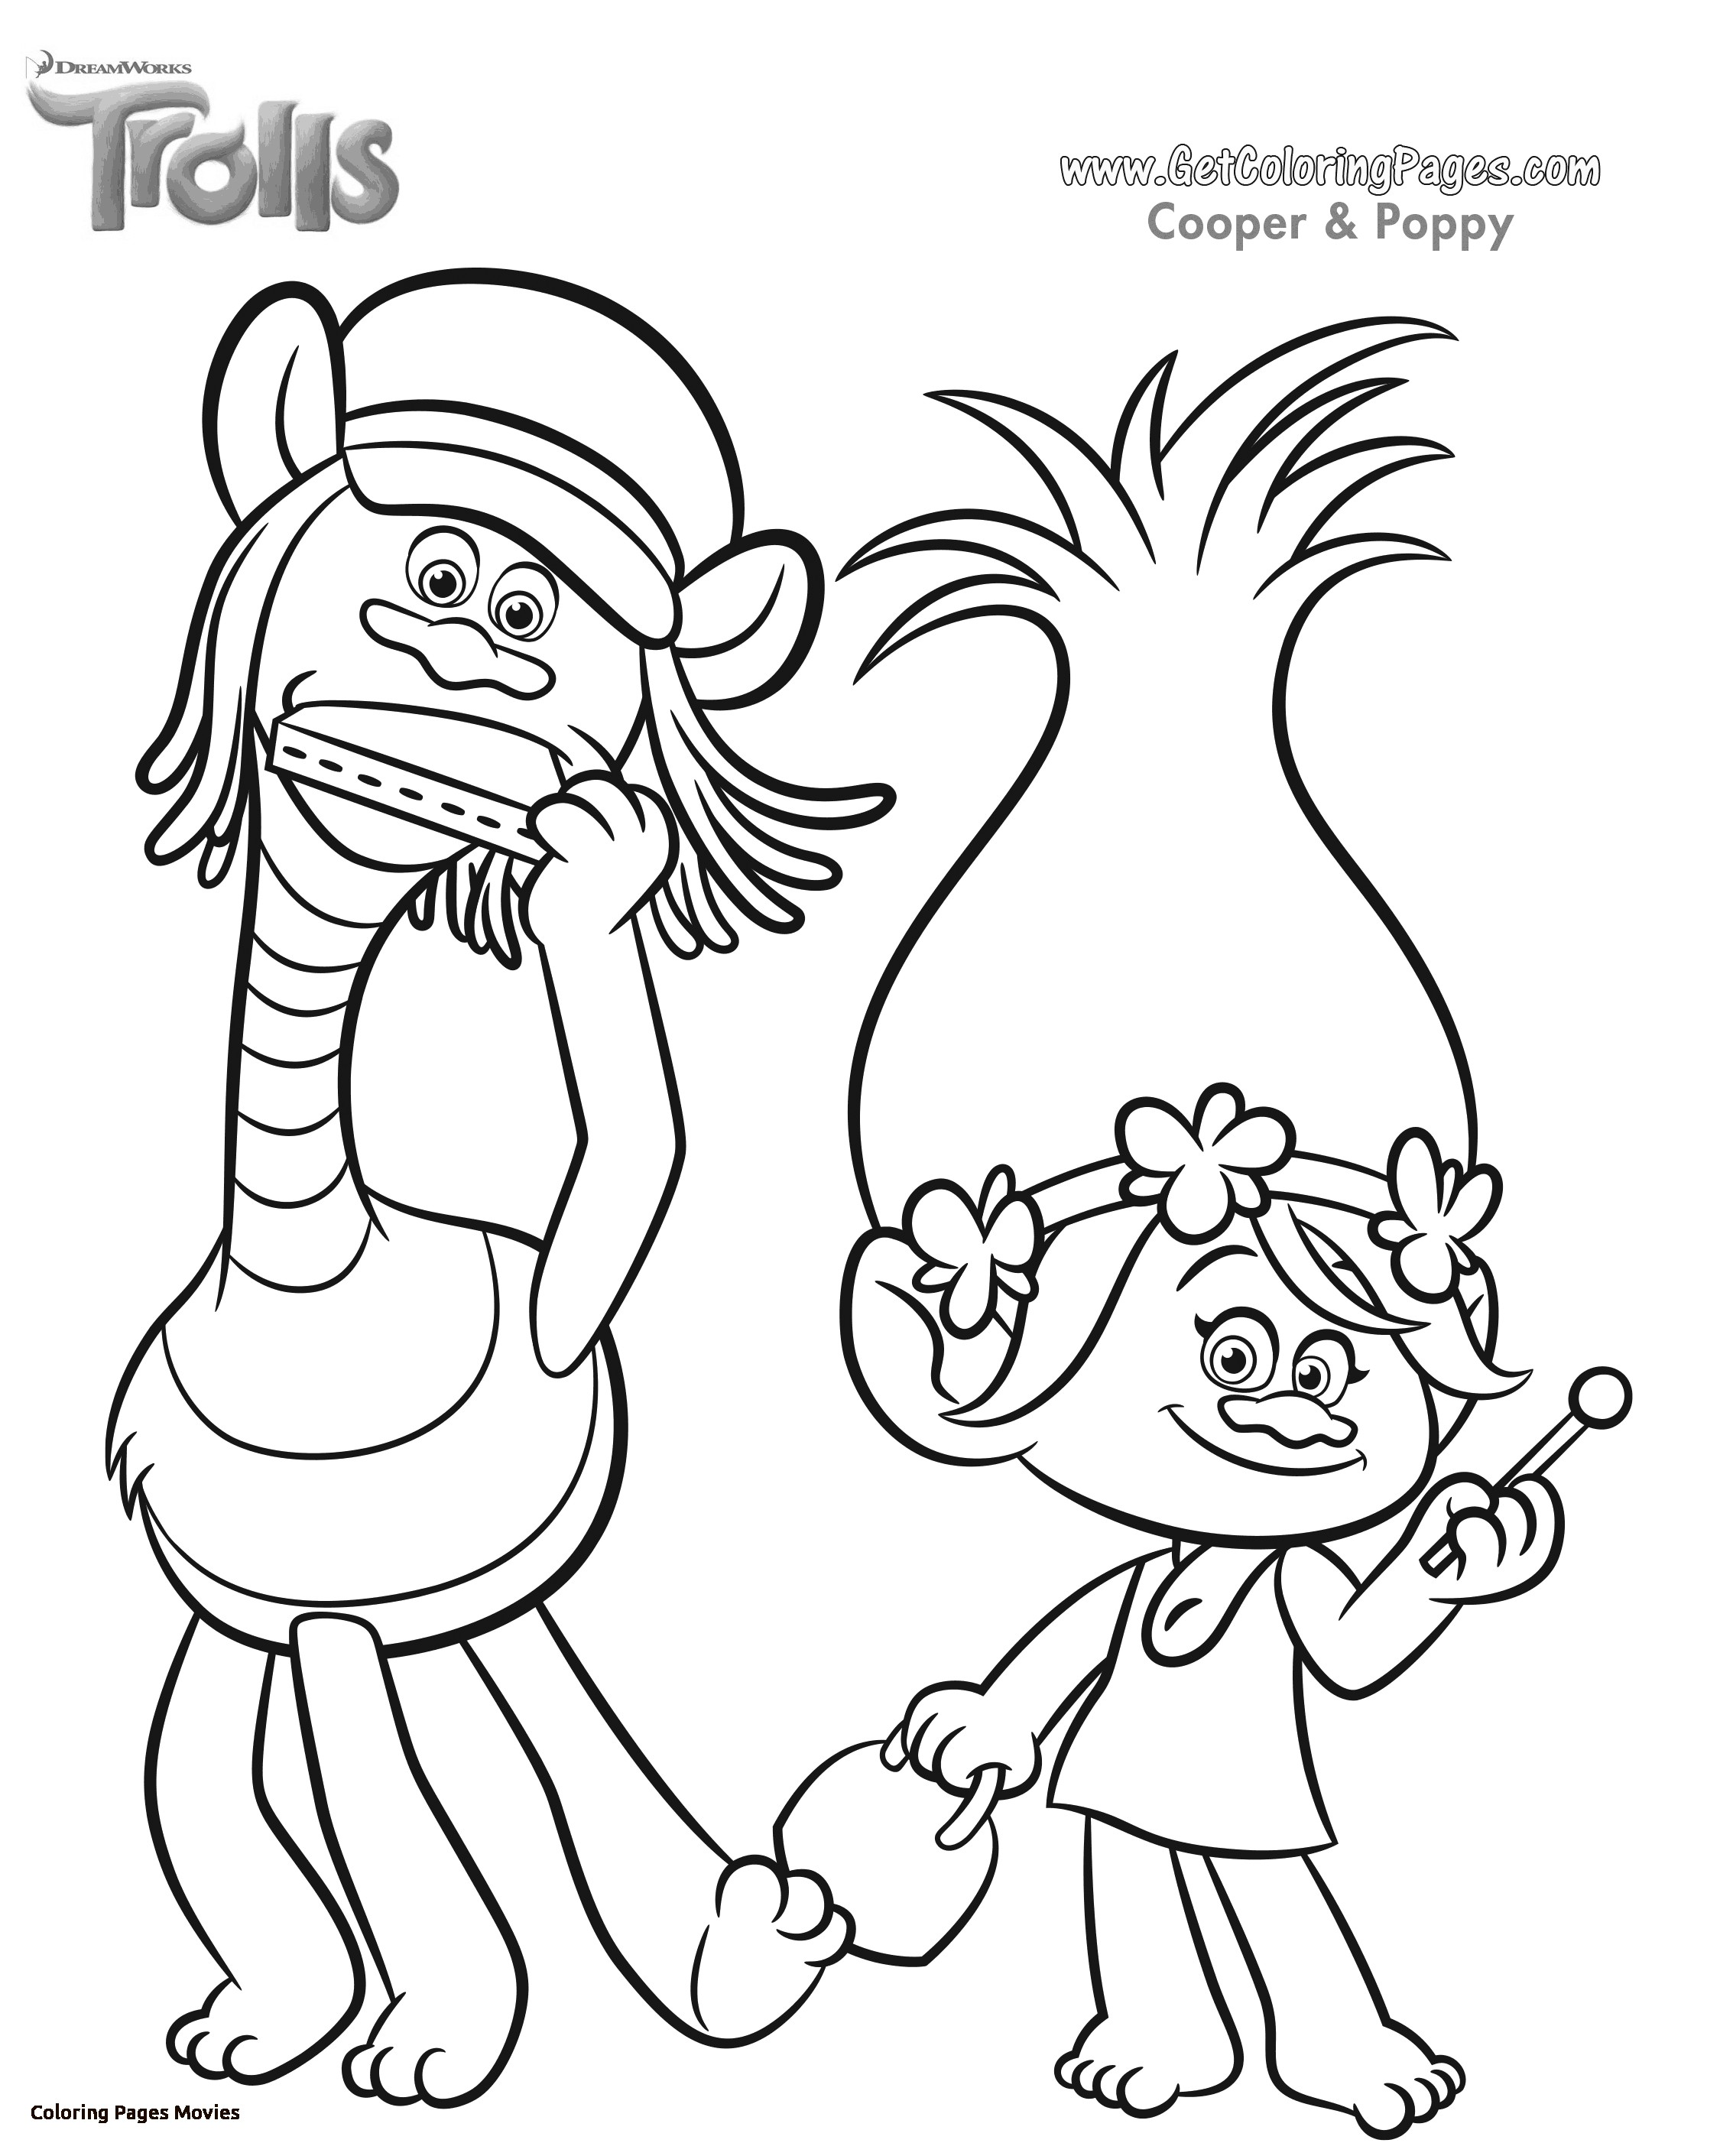 2250x2820 Coloring Pages Movies